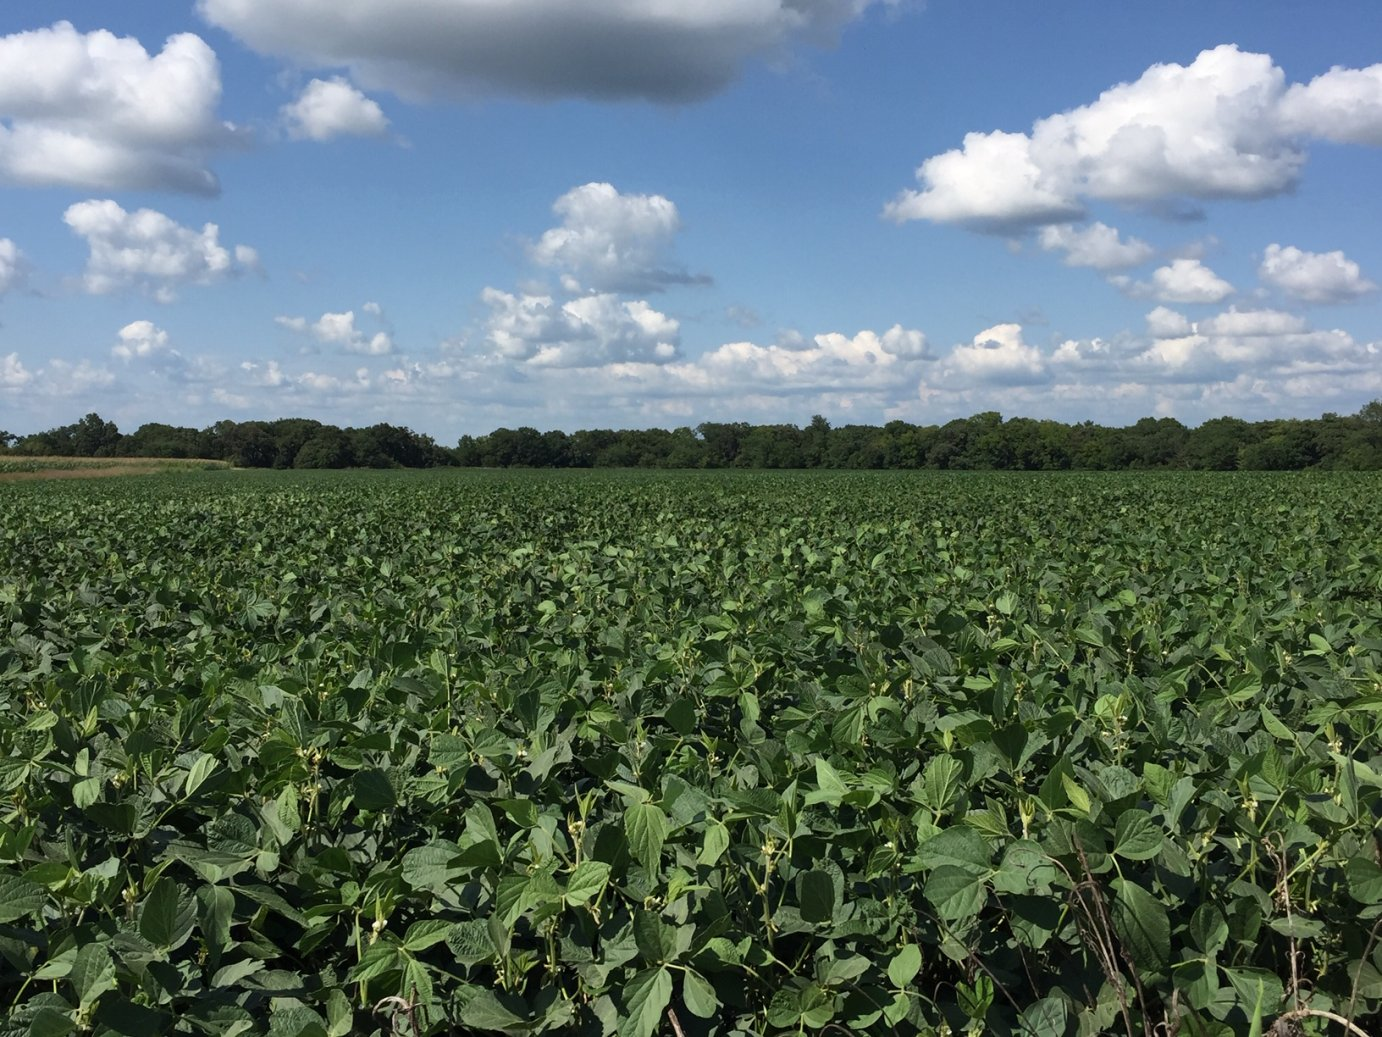 Soybean crop, south of Wamego, Kansas (File photo by J. Schafer)